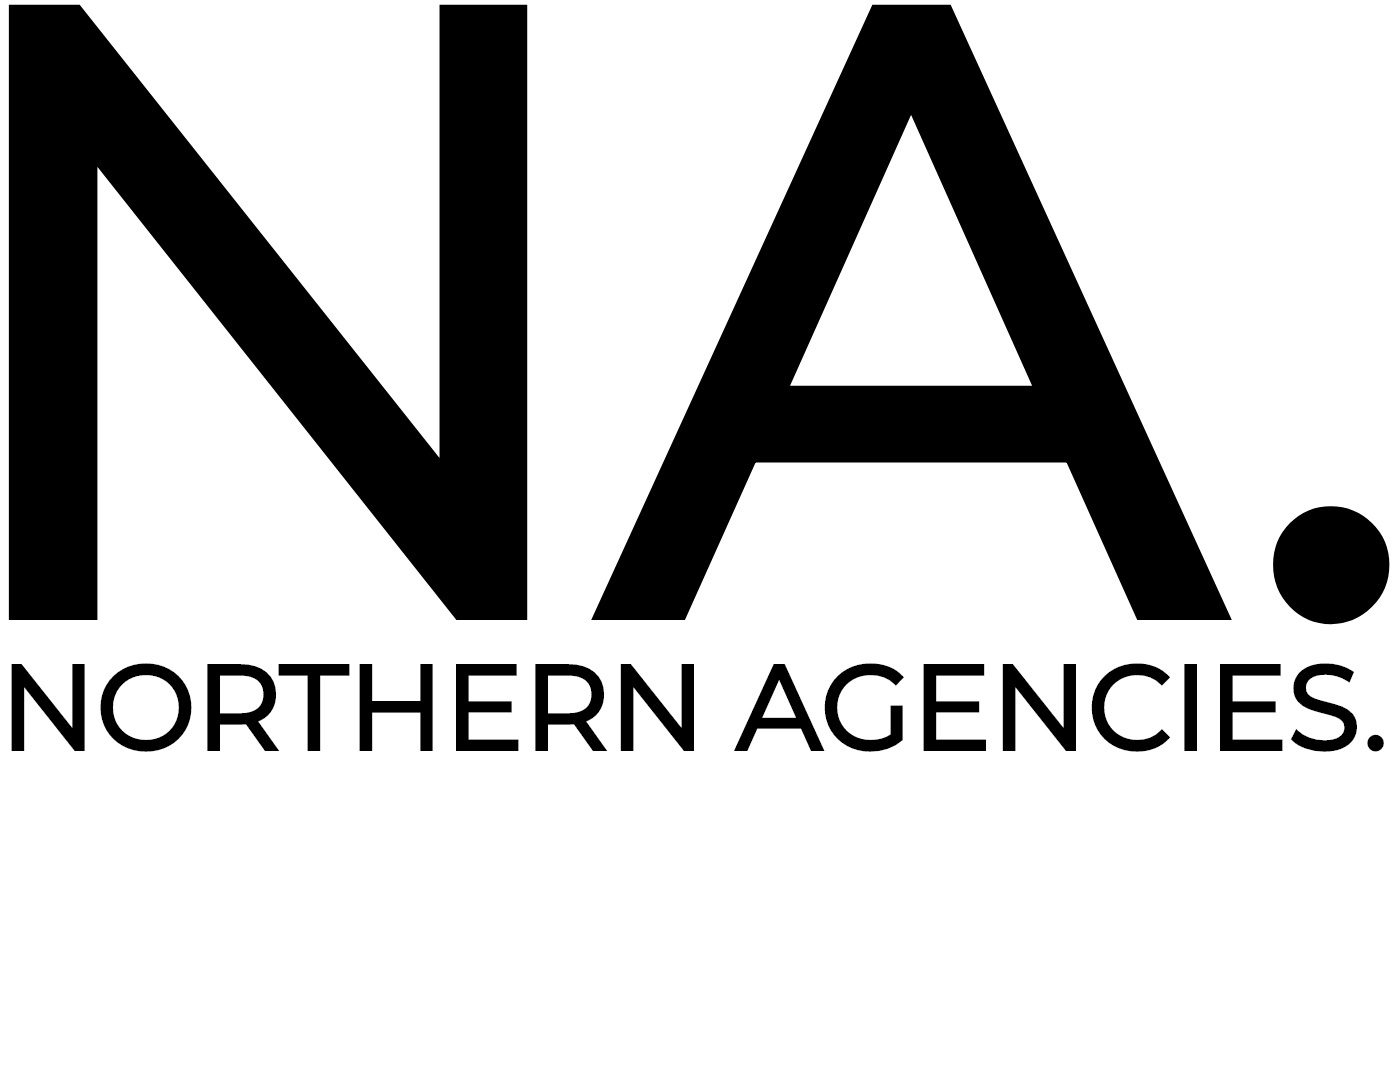 NORTHERN AGENCIES